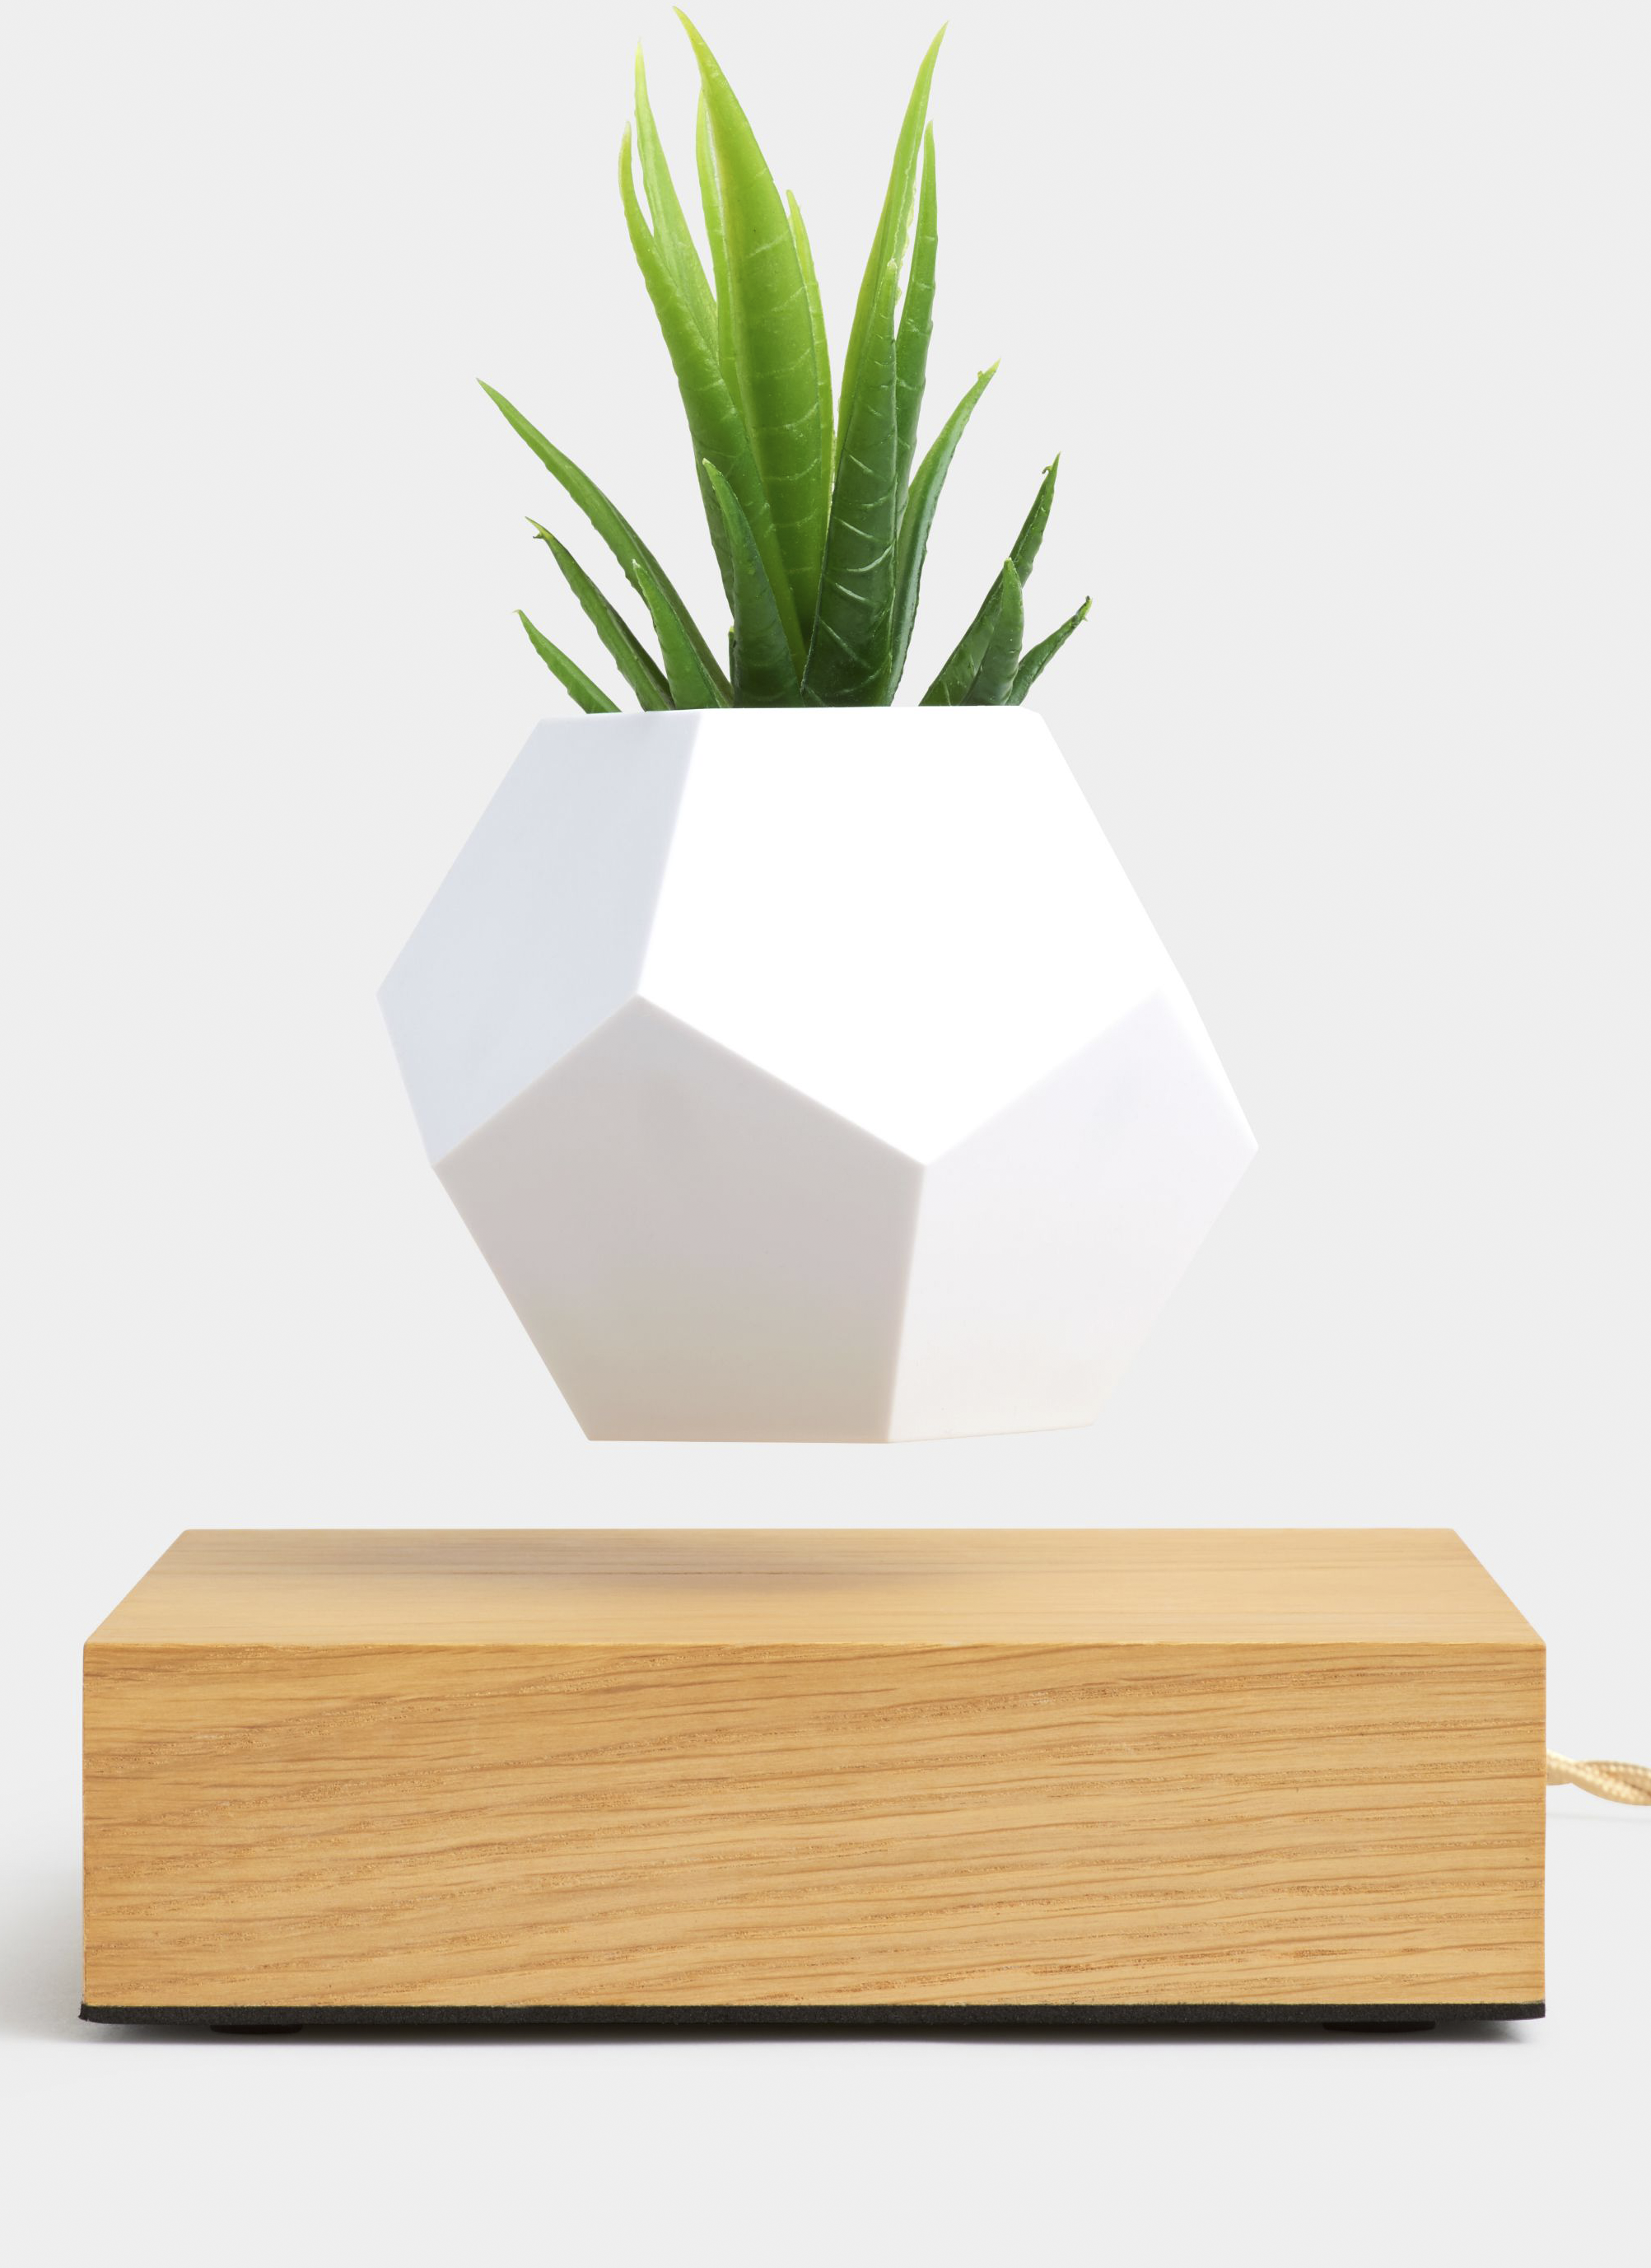 $300 - LYFE floating plant   I've wanted one of these for so long after seeing it in a friends apartment! Not sure exactly how it works, but I think its SO cool!!!! I'd be ecstatic if this was gifted to me!